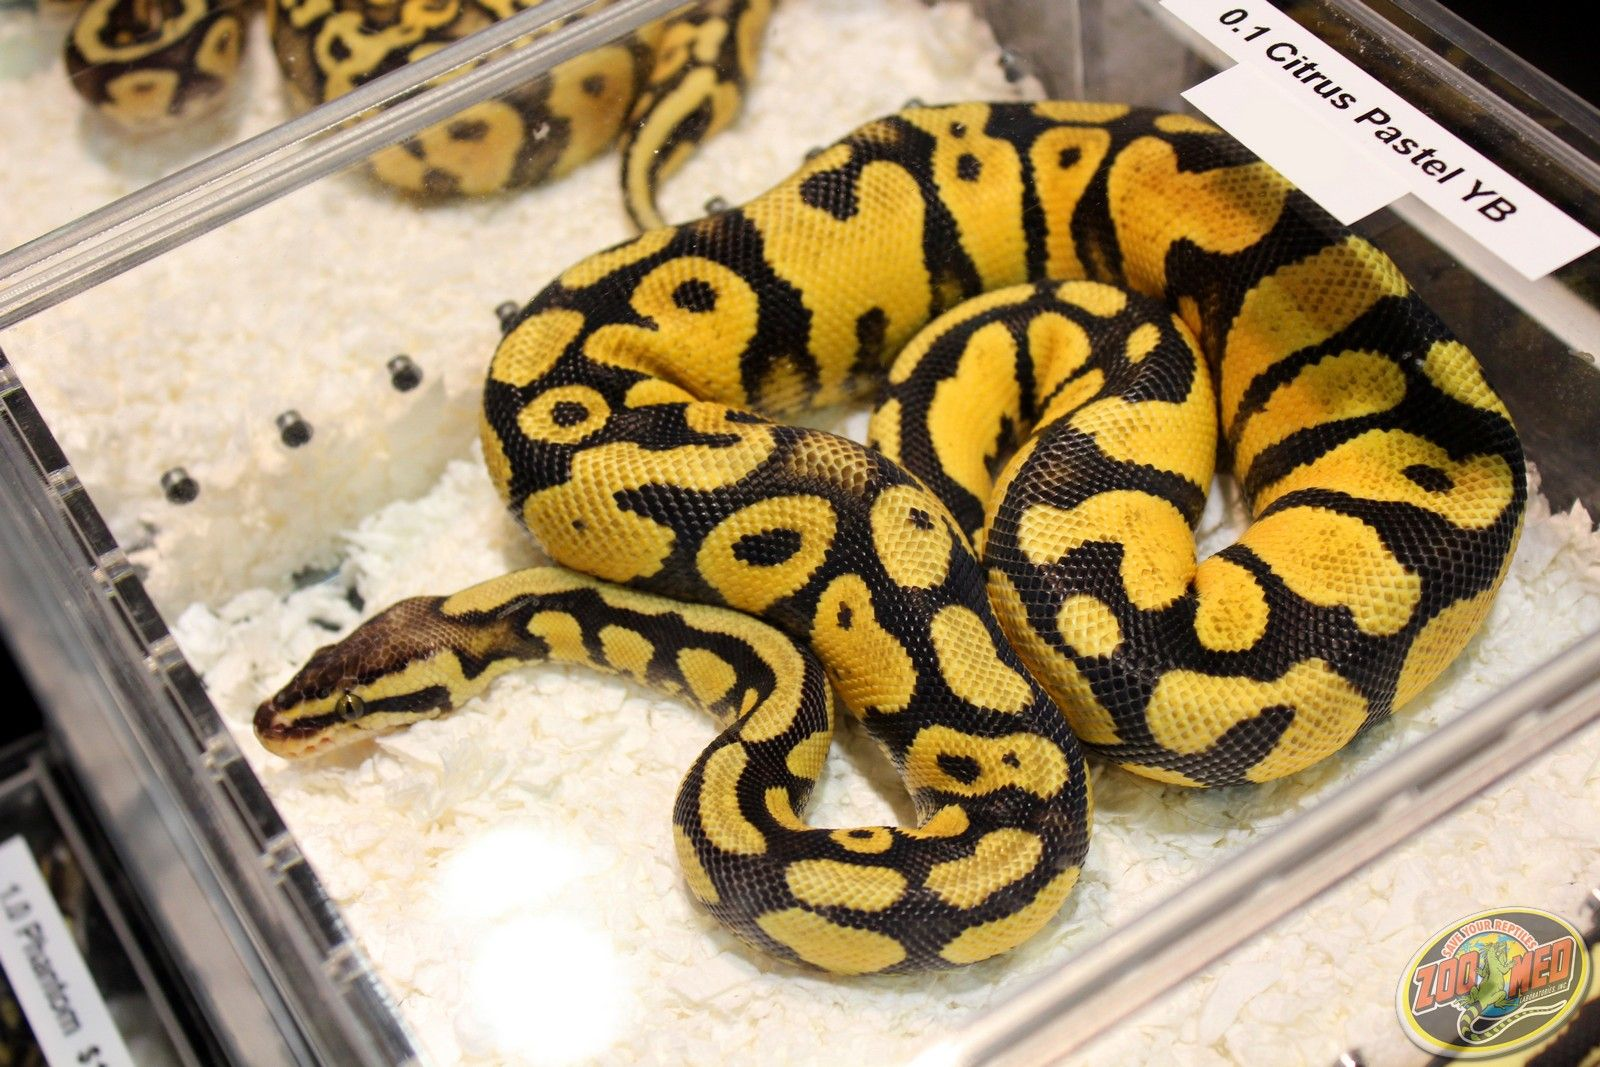 Citrus Pastel from Keo Reptiles at the Reptile Super Show